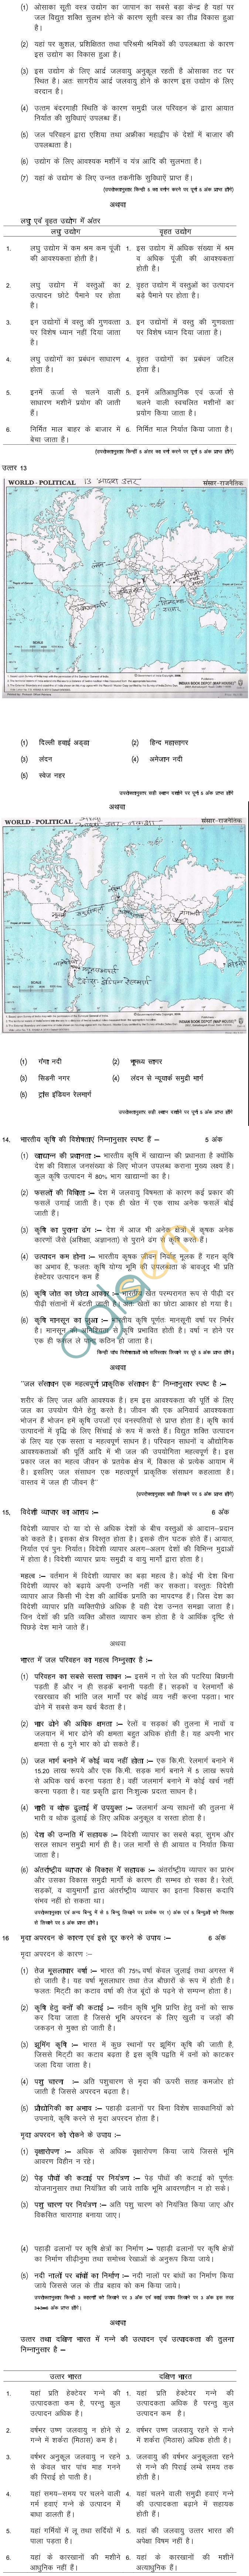 MP Board Class XII Geography Model Questions & Answers - Set 3